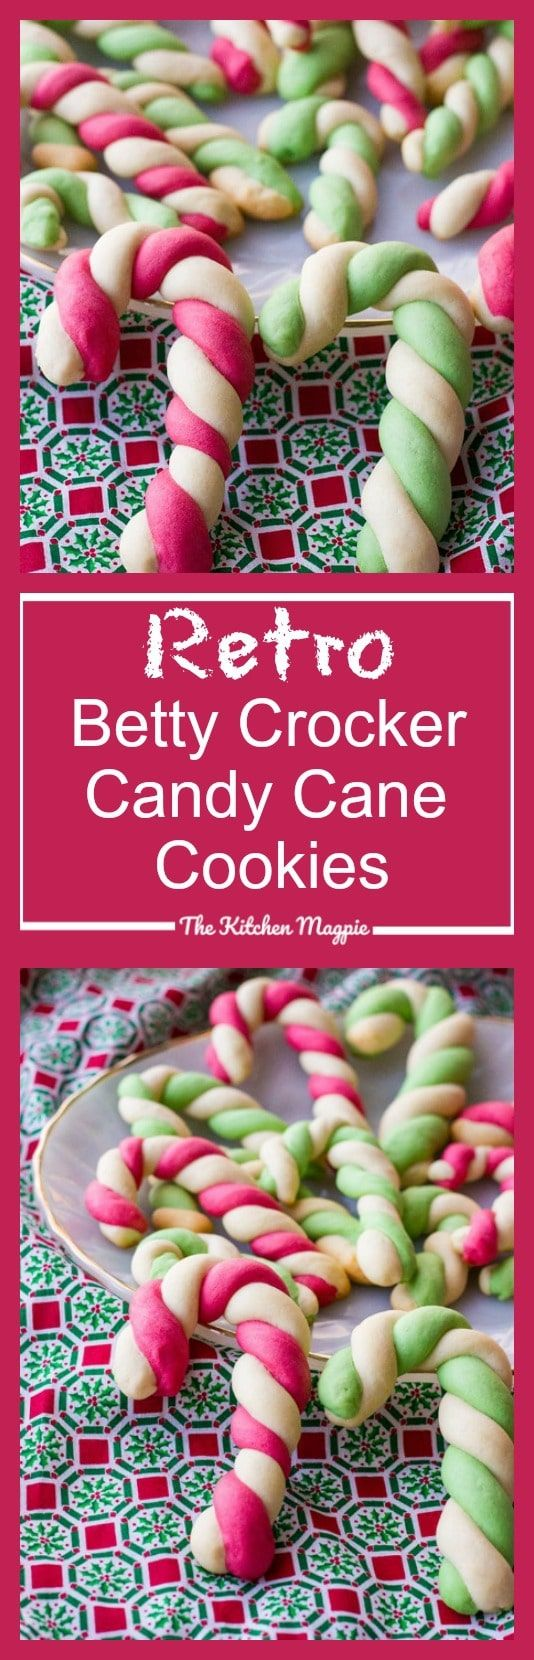 There's only one recipe for Candy Cane Cookies, and it's the retro Betty Crocker Candy Cane Cookies one! The classic cookie from our childhood's!